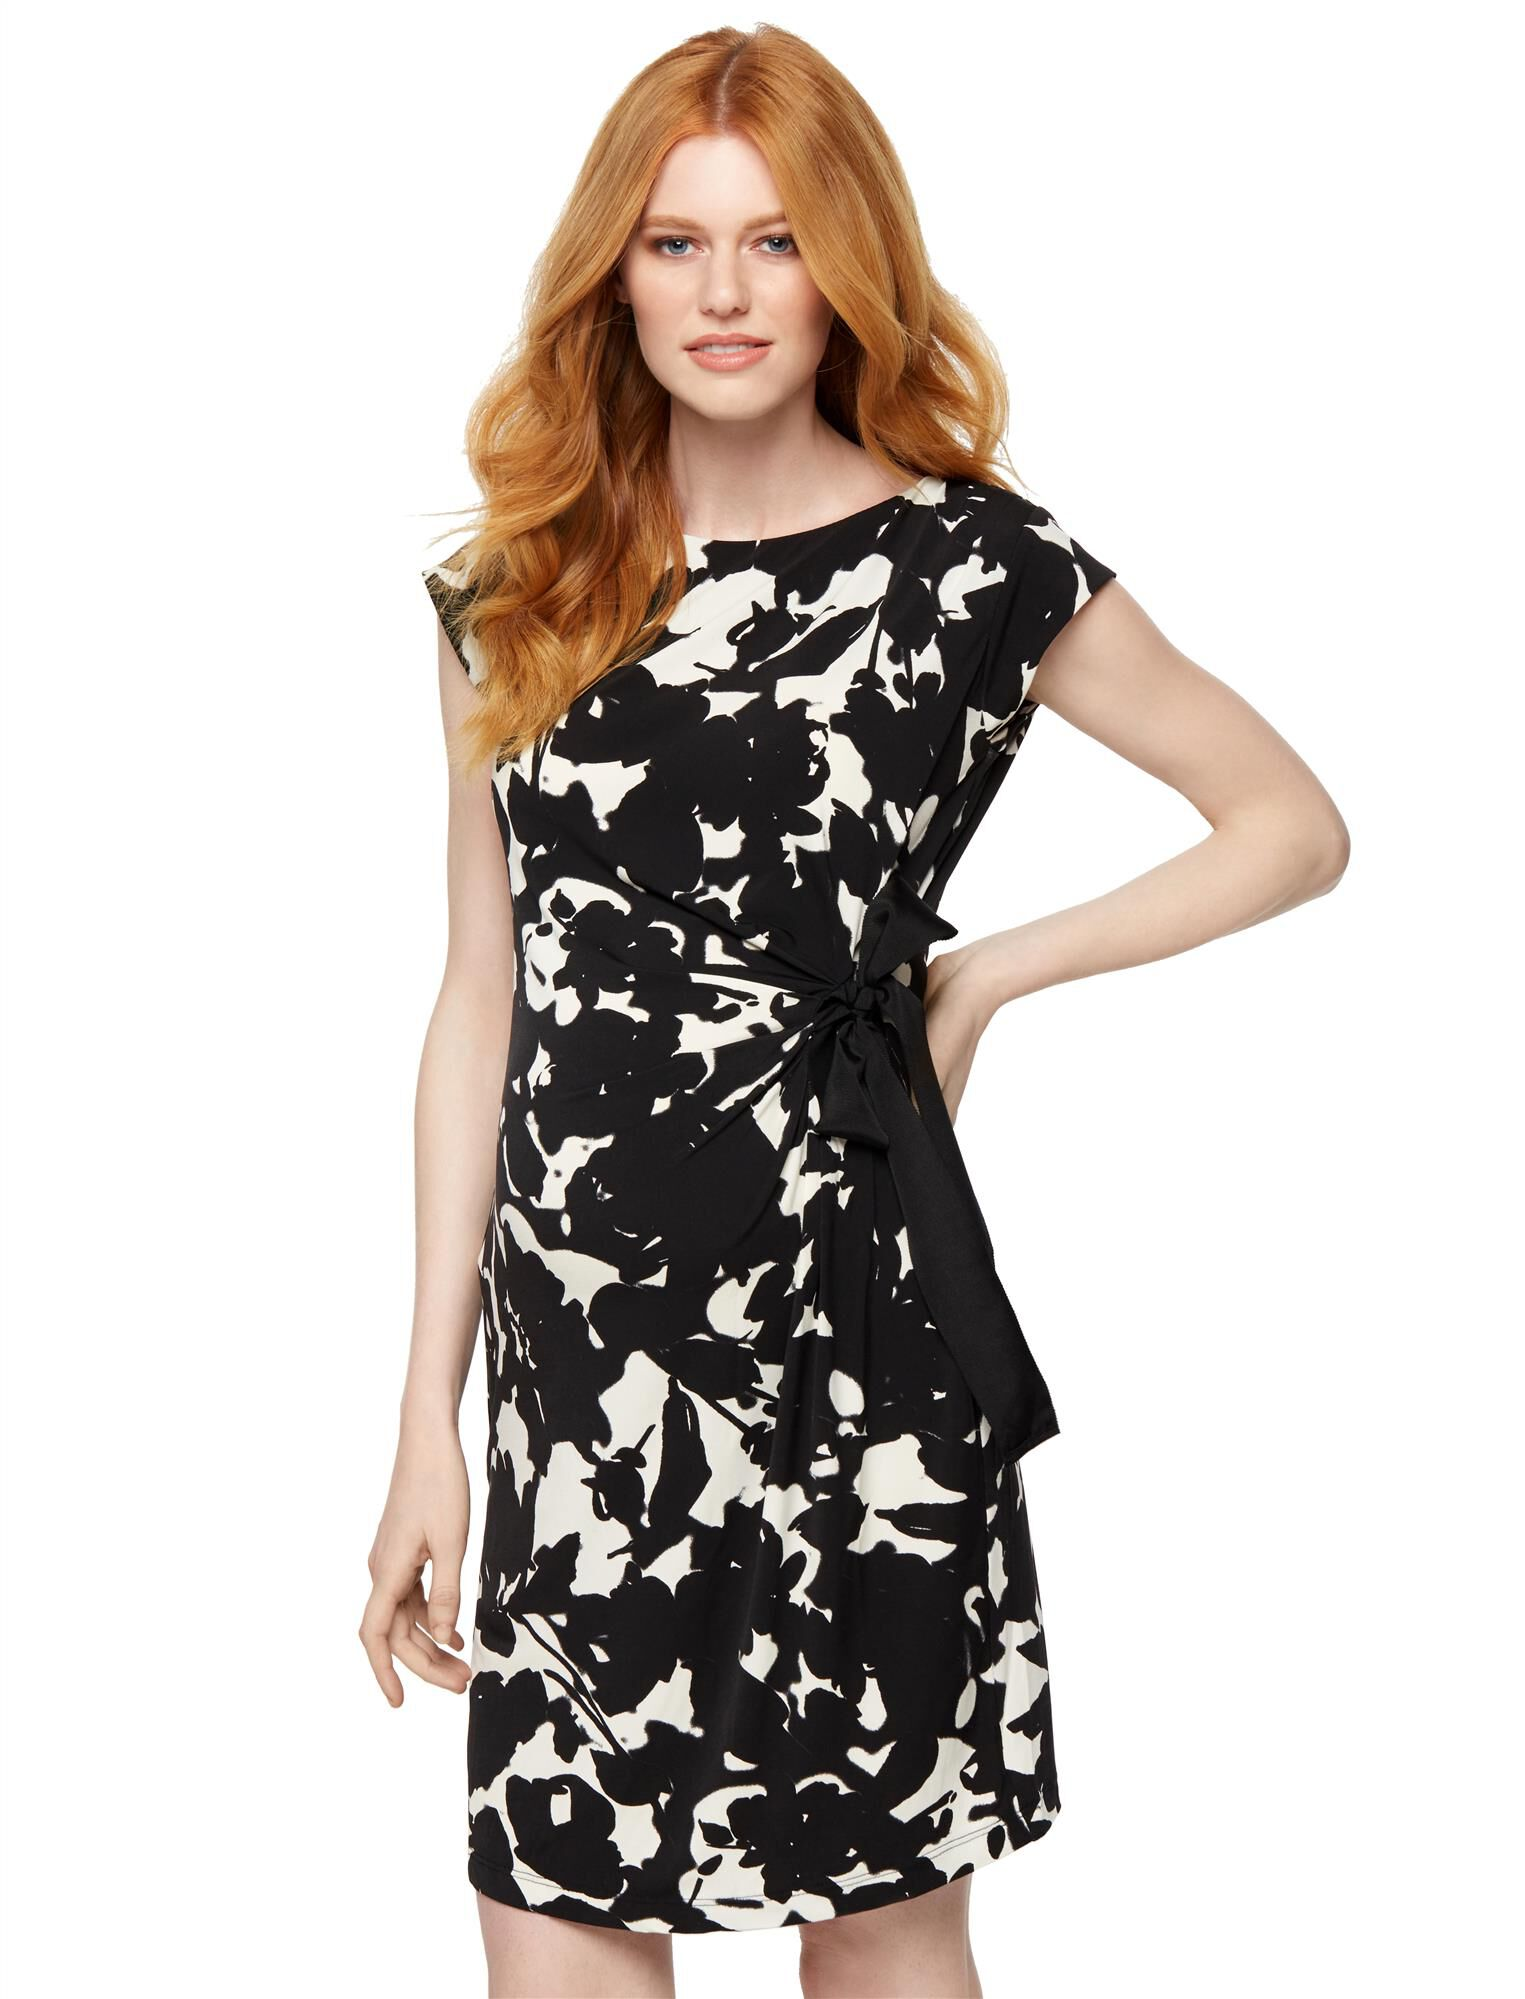 TAYLOR Side Tie Maternity Dress- Black/White